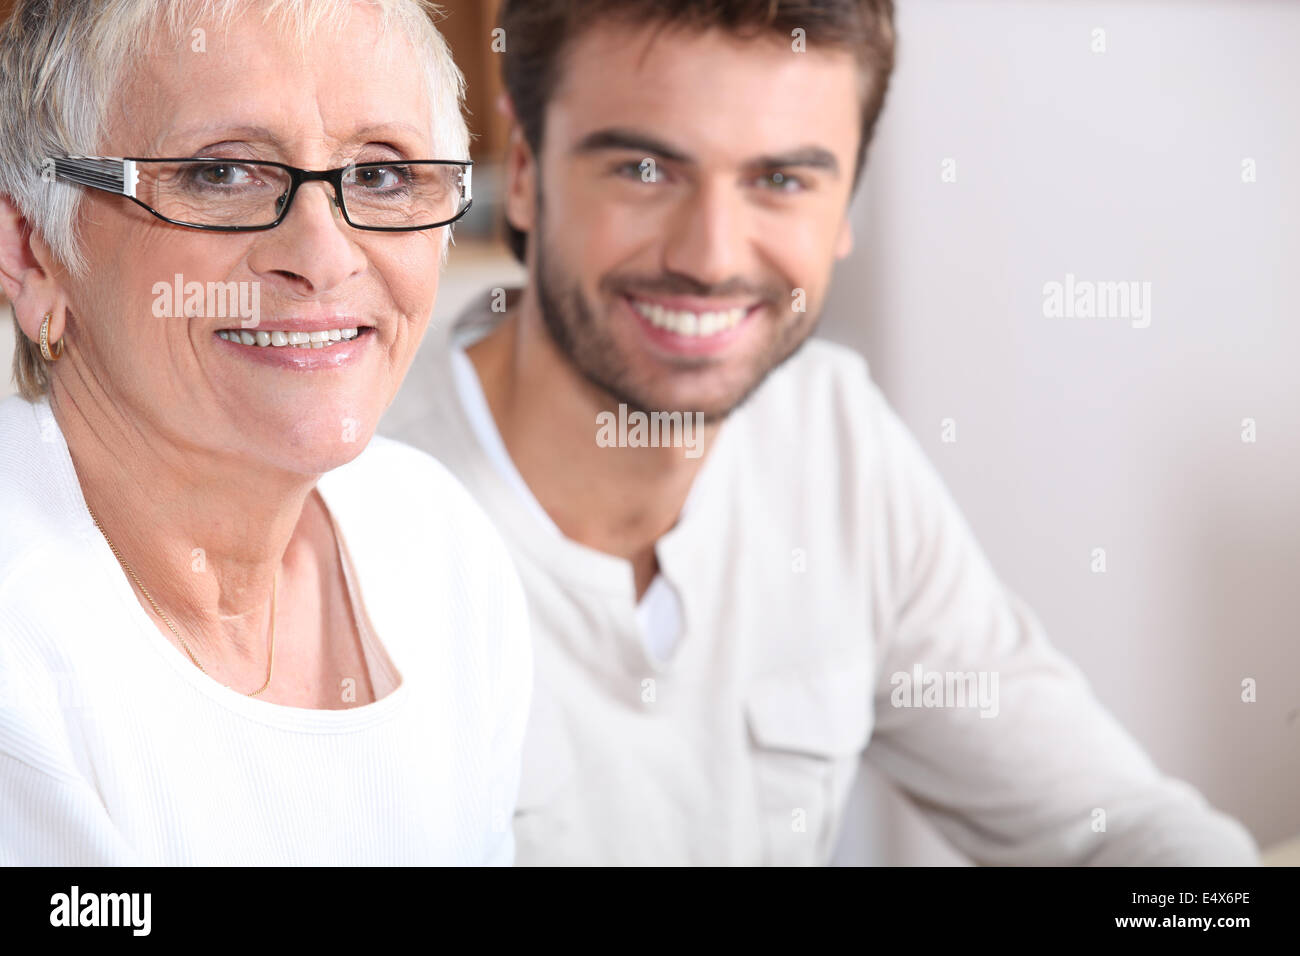 older man and younger woman relationship